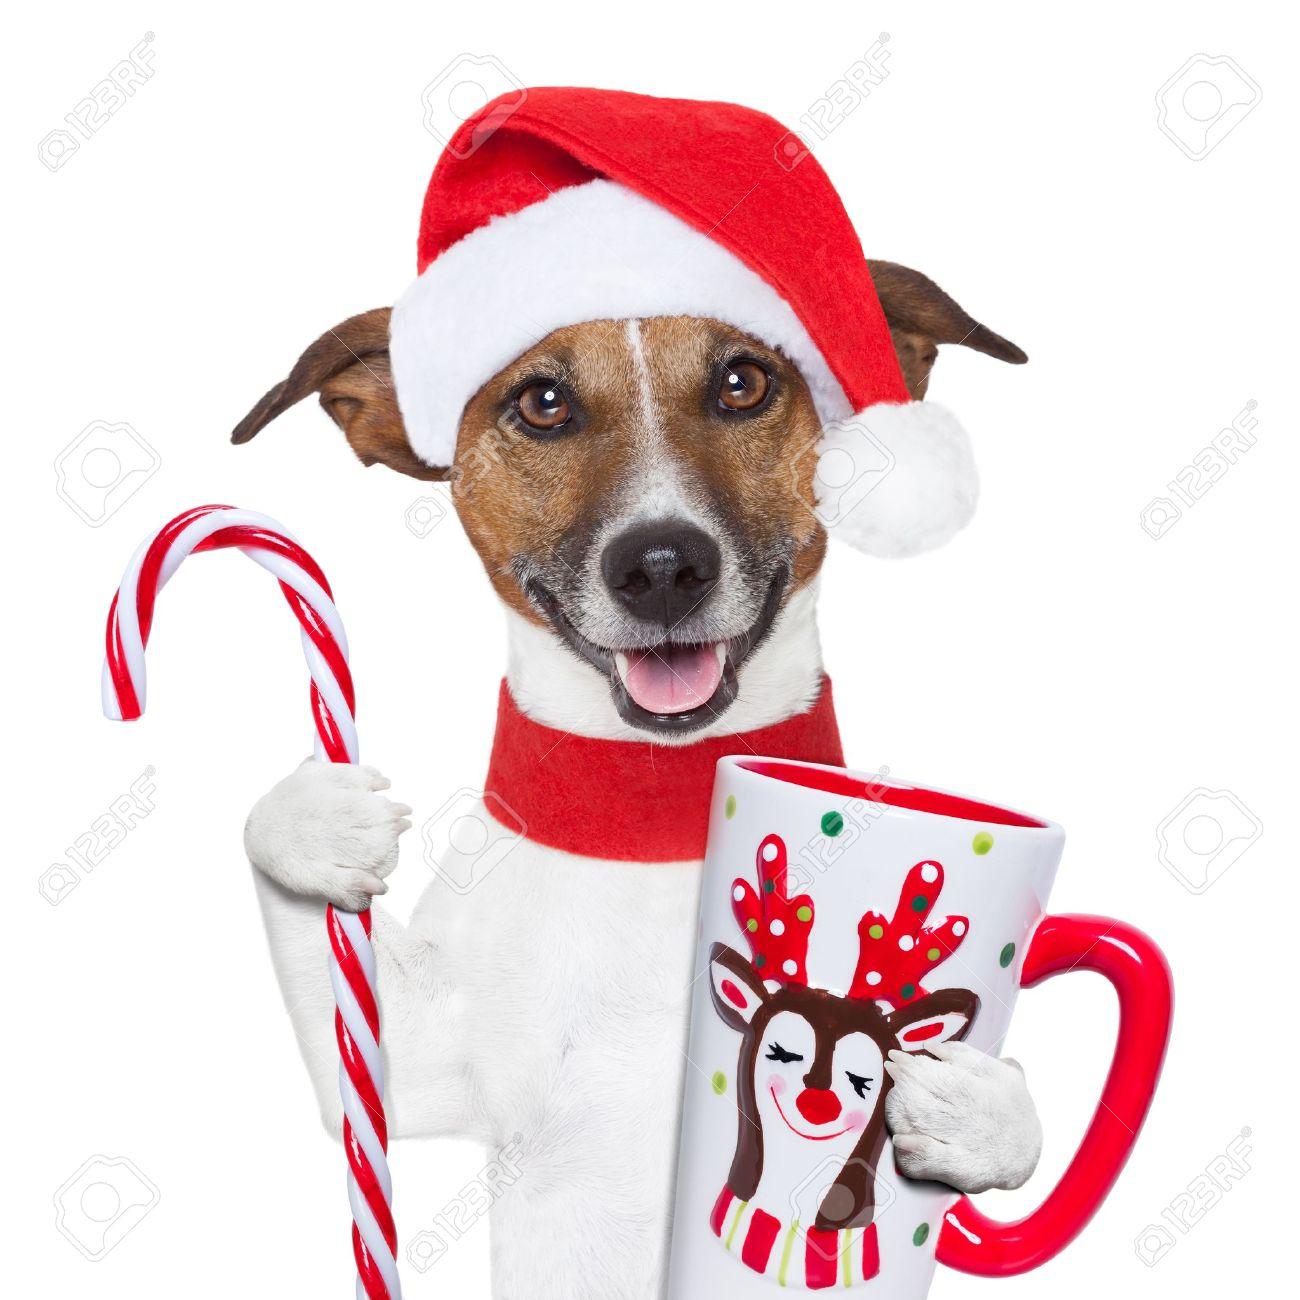 santa claus dog with sugar cane and cup Stock Photo - 16255591